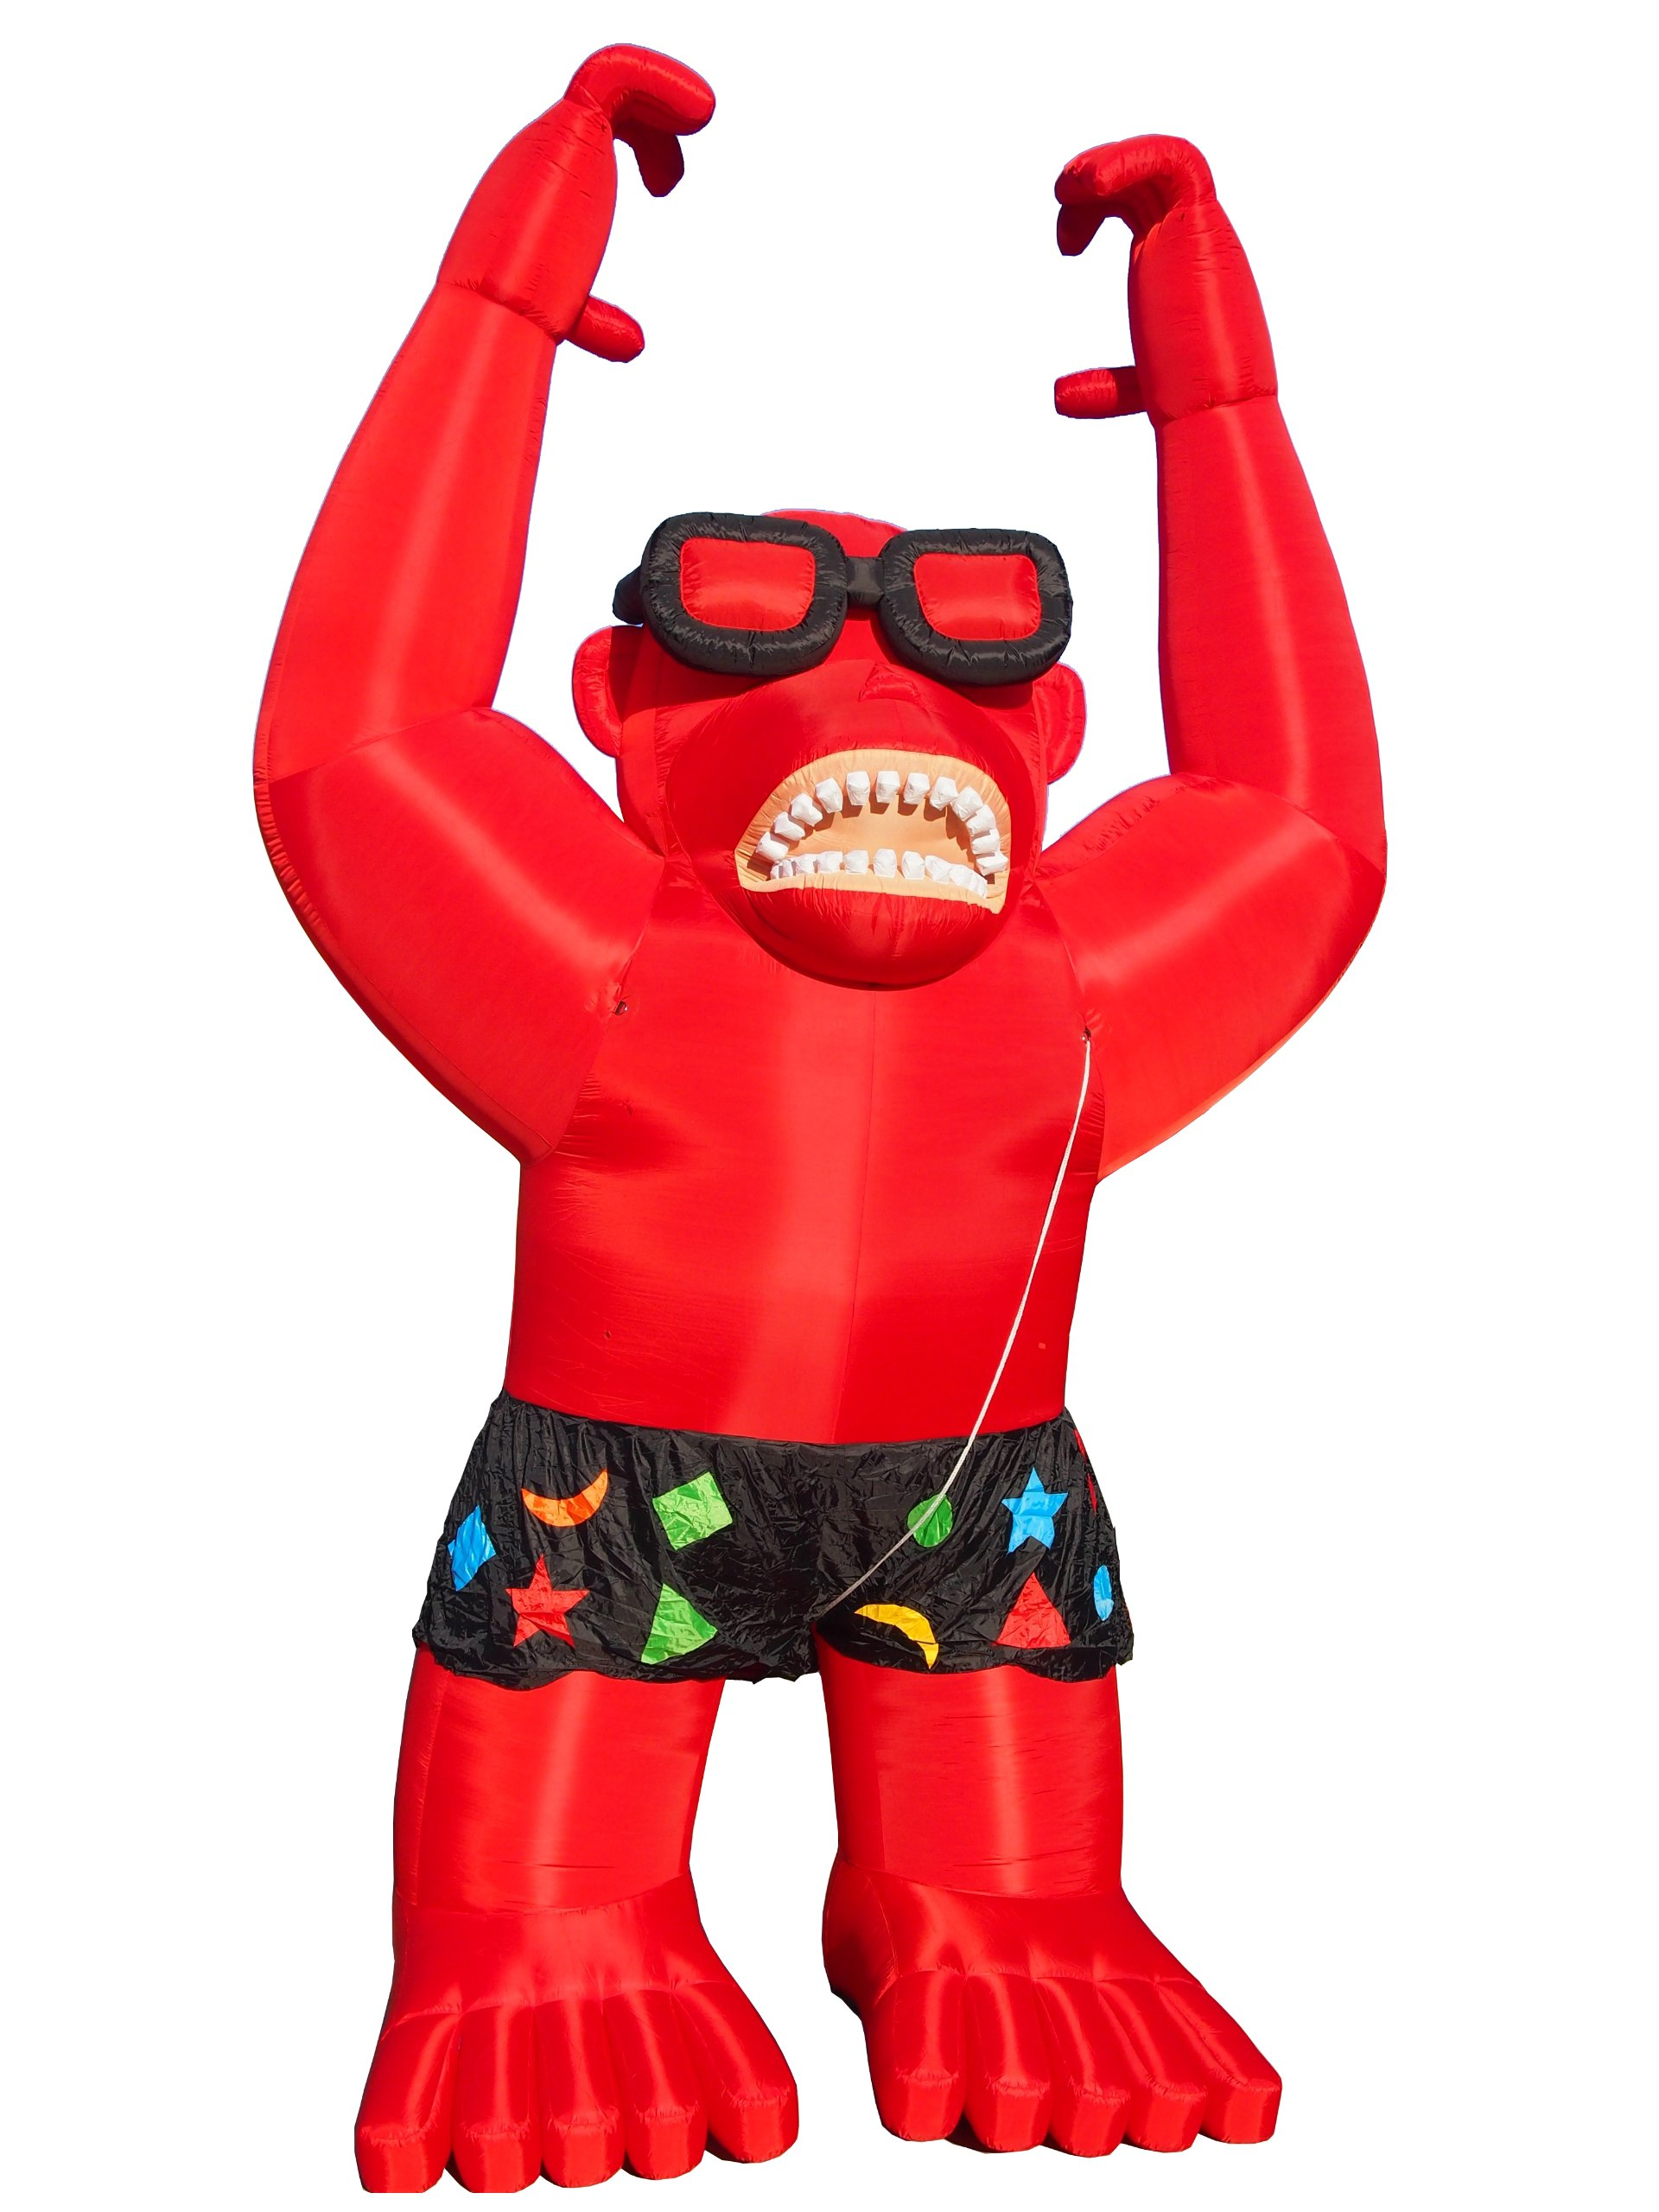 LookOurWay Giant Gorilla Inflatables with Harnessing, Red